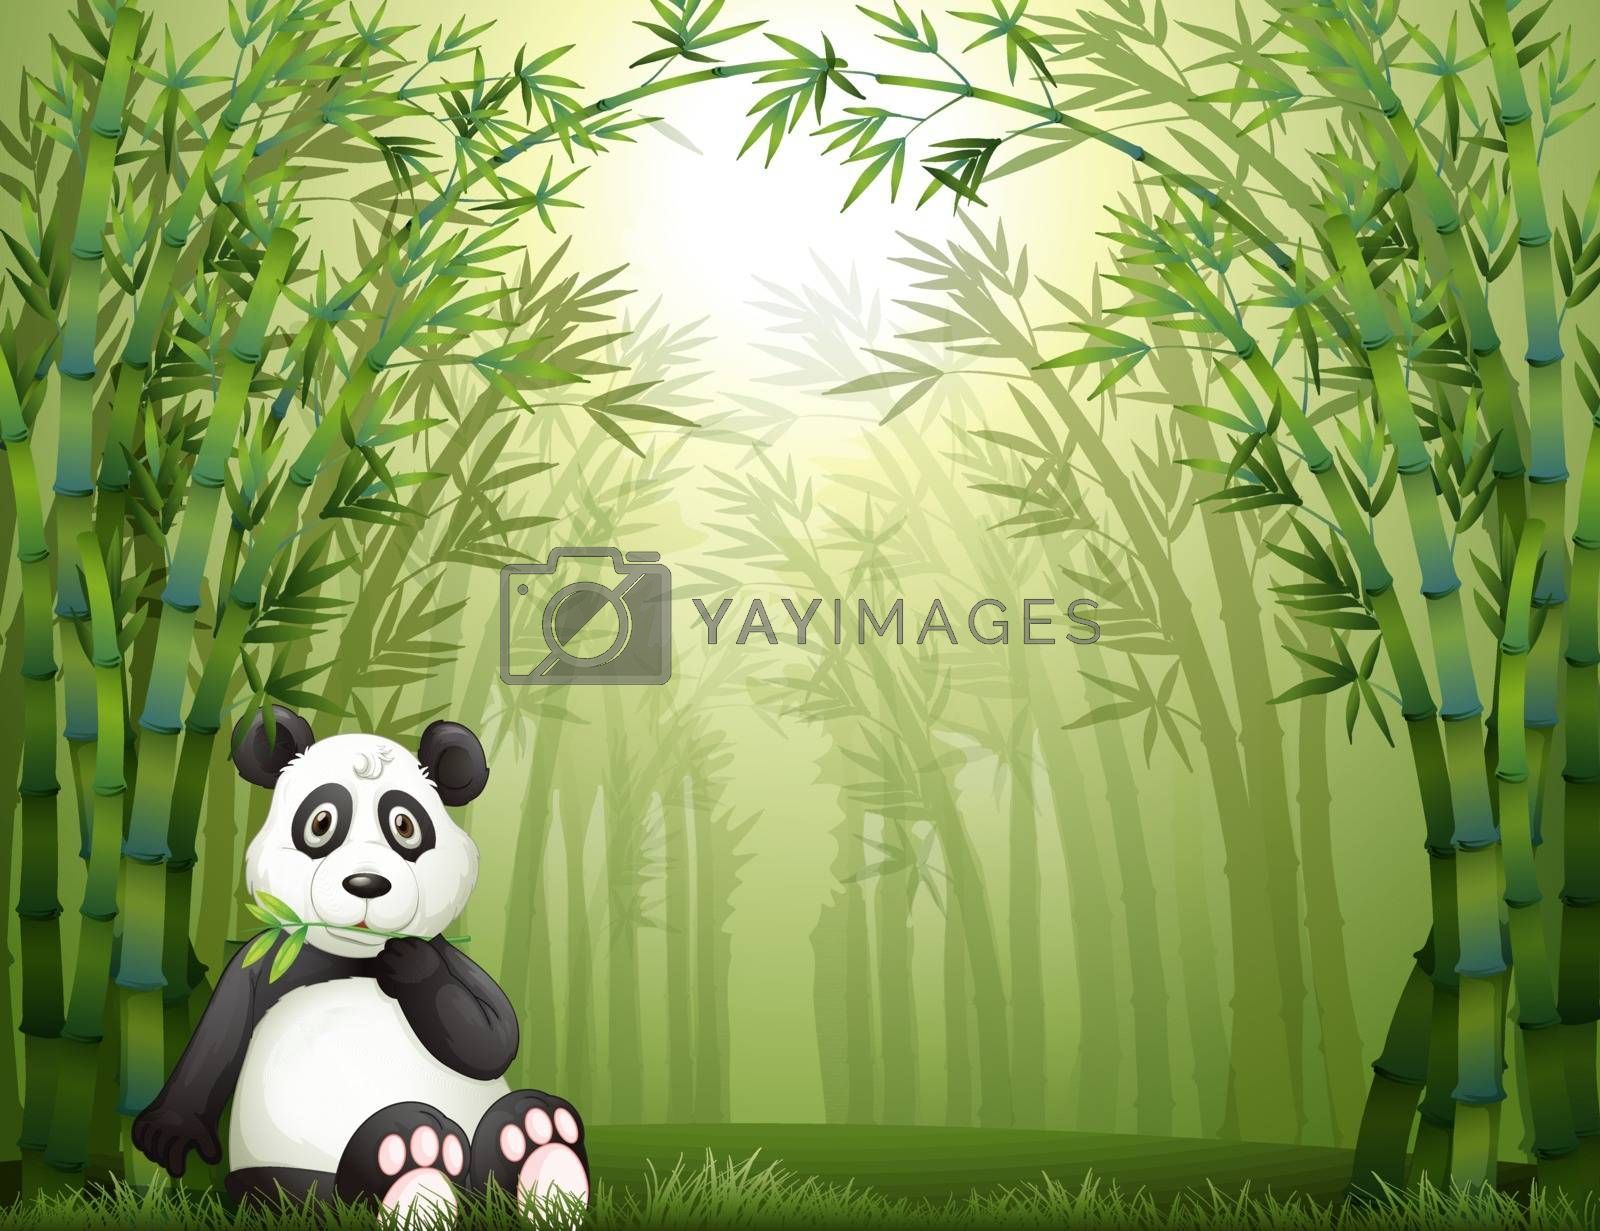 Illustration of a sitting panda bear in a bamboo forest